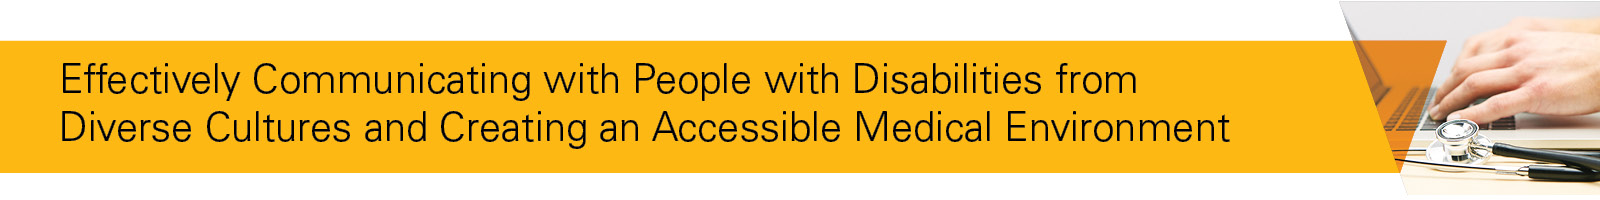 Effectively Communicating with People with Disabilities from Diverse Cultures and Creating an Accessible Medical Environment Banner